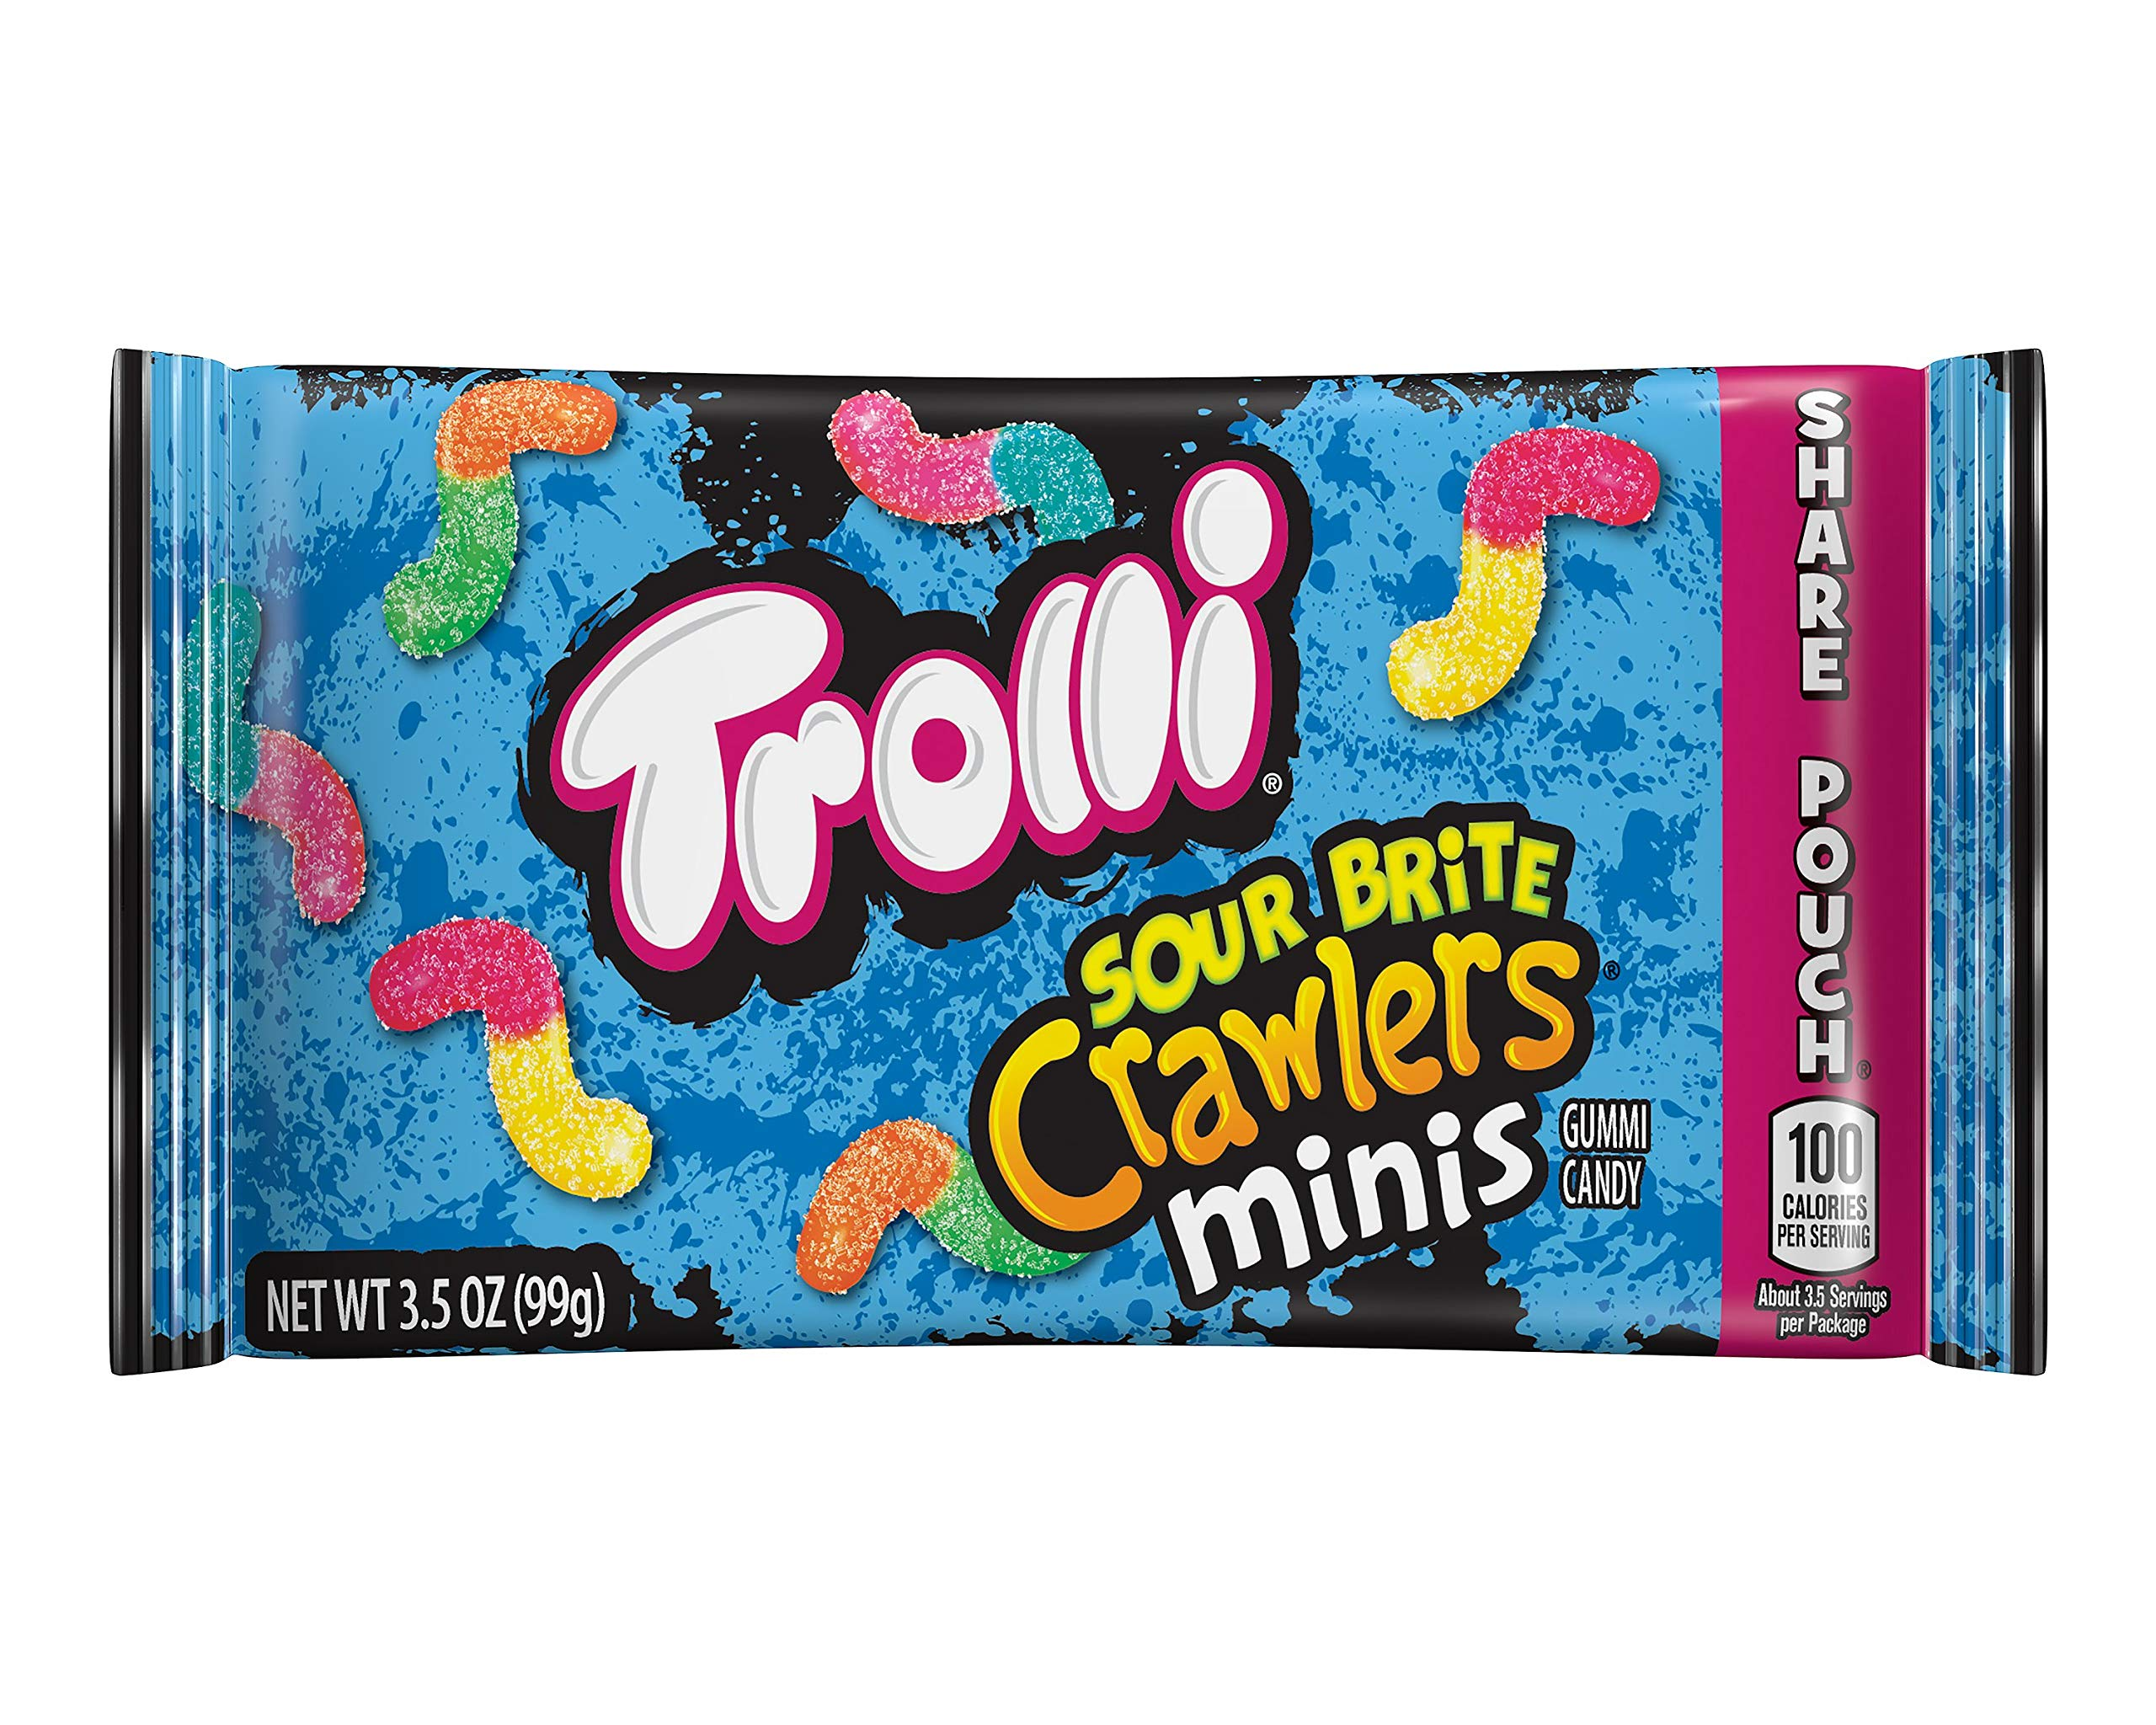 Trolli Mini Sour Brite Crawlers Gummy Worms, 3.5 Ounce Bag (Pack of 18) Sour Gummy Worms